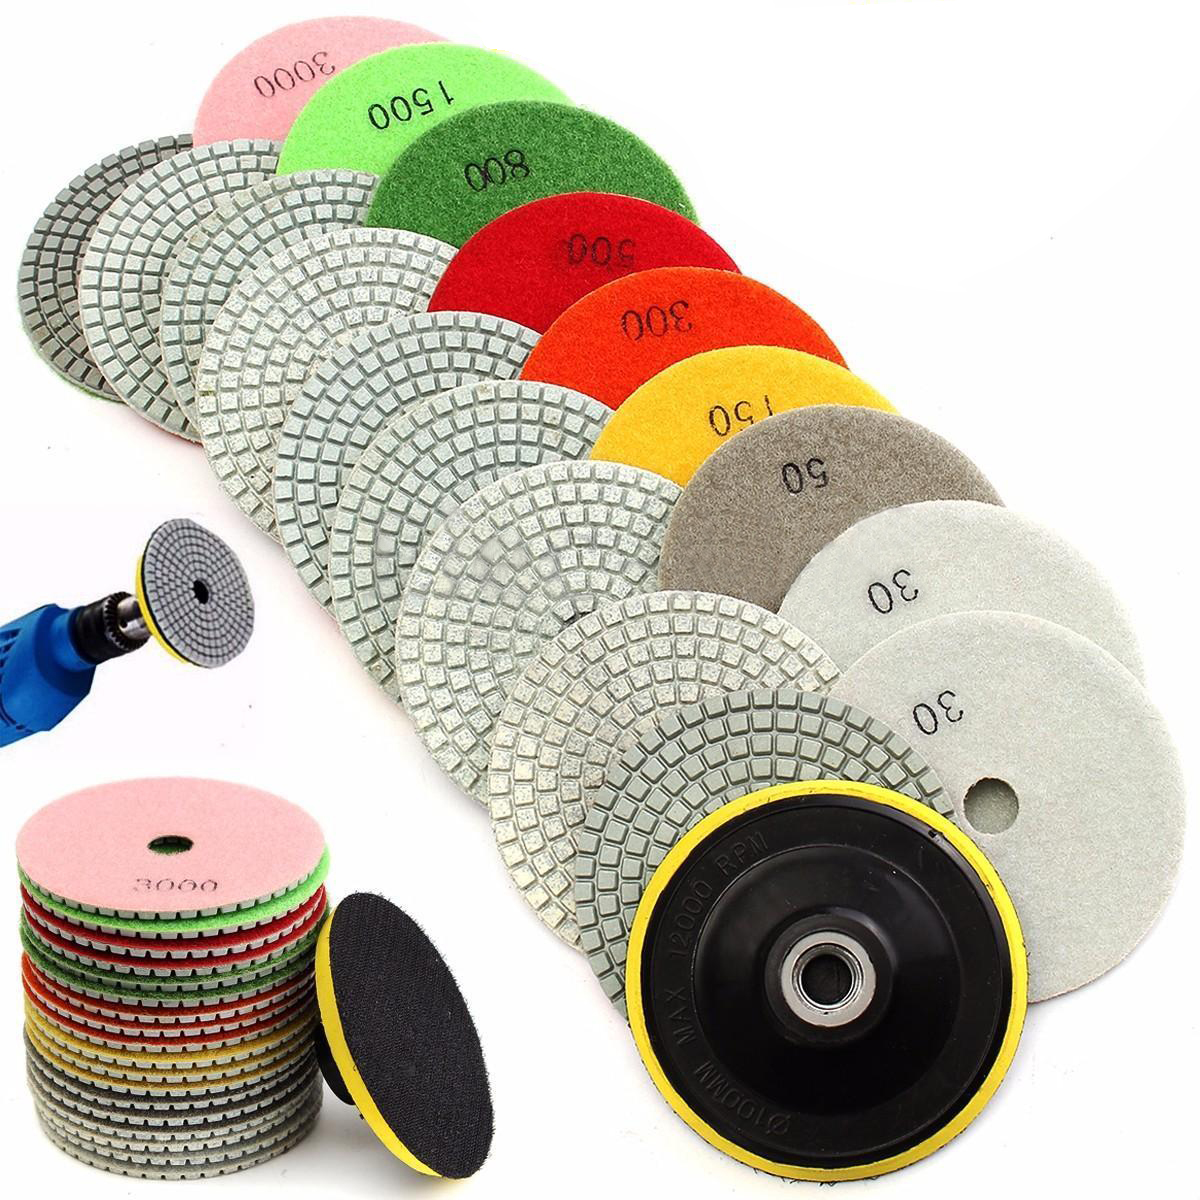 19pcs 4inch Wet/Dry Diamond Polishing Pads For Granite Marble Concrete Stone Polishing Tools free shipping high quality 1pc hk303824 7942 30 drawn cup type needle roller bearing 30x38x24mm